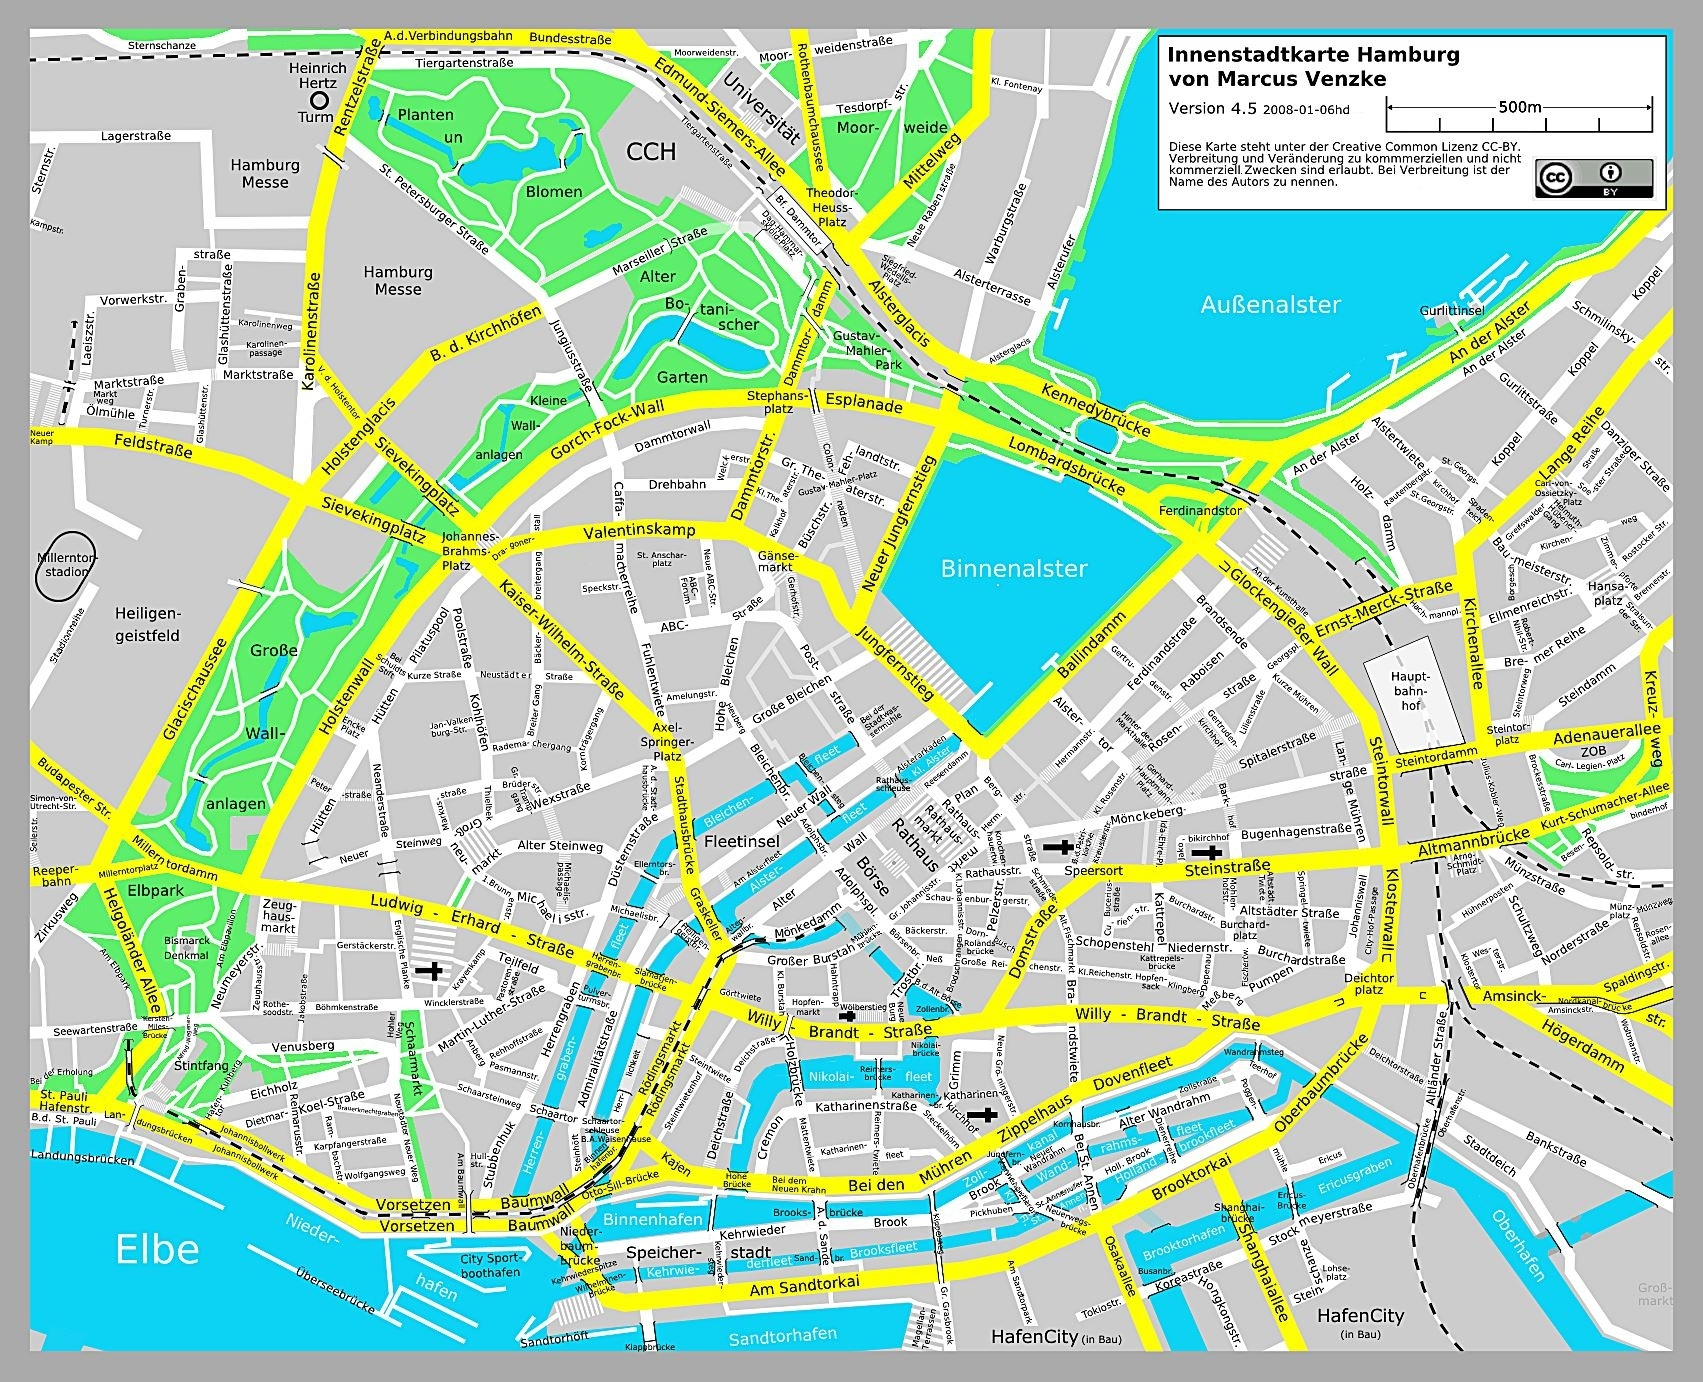 Large Hamburg Maps For Free Download And Print   High-Resolution And inside Hamburg Germany Street Map